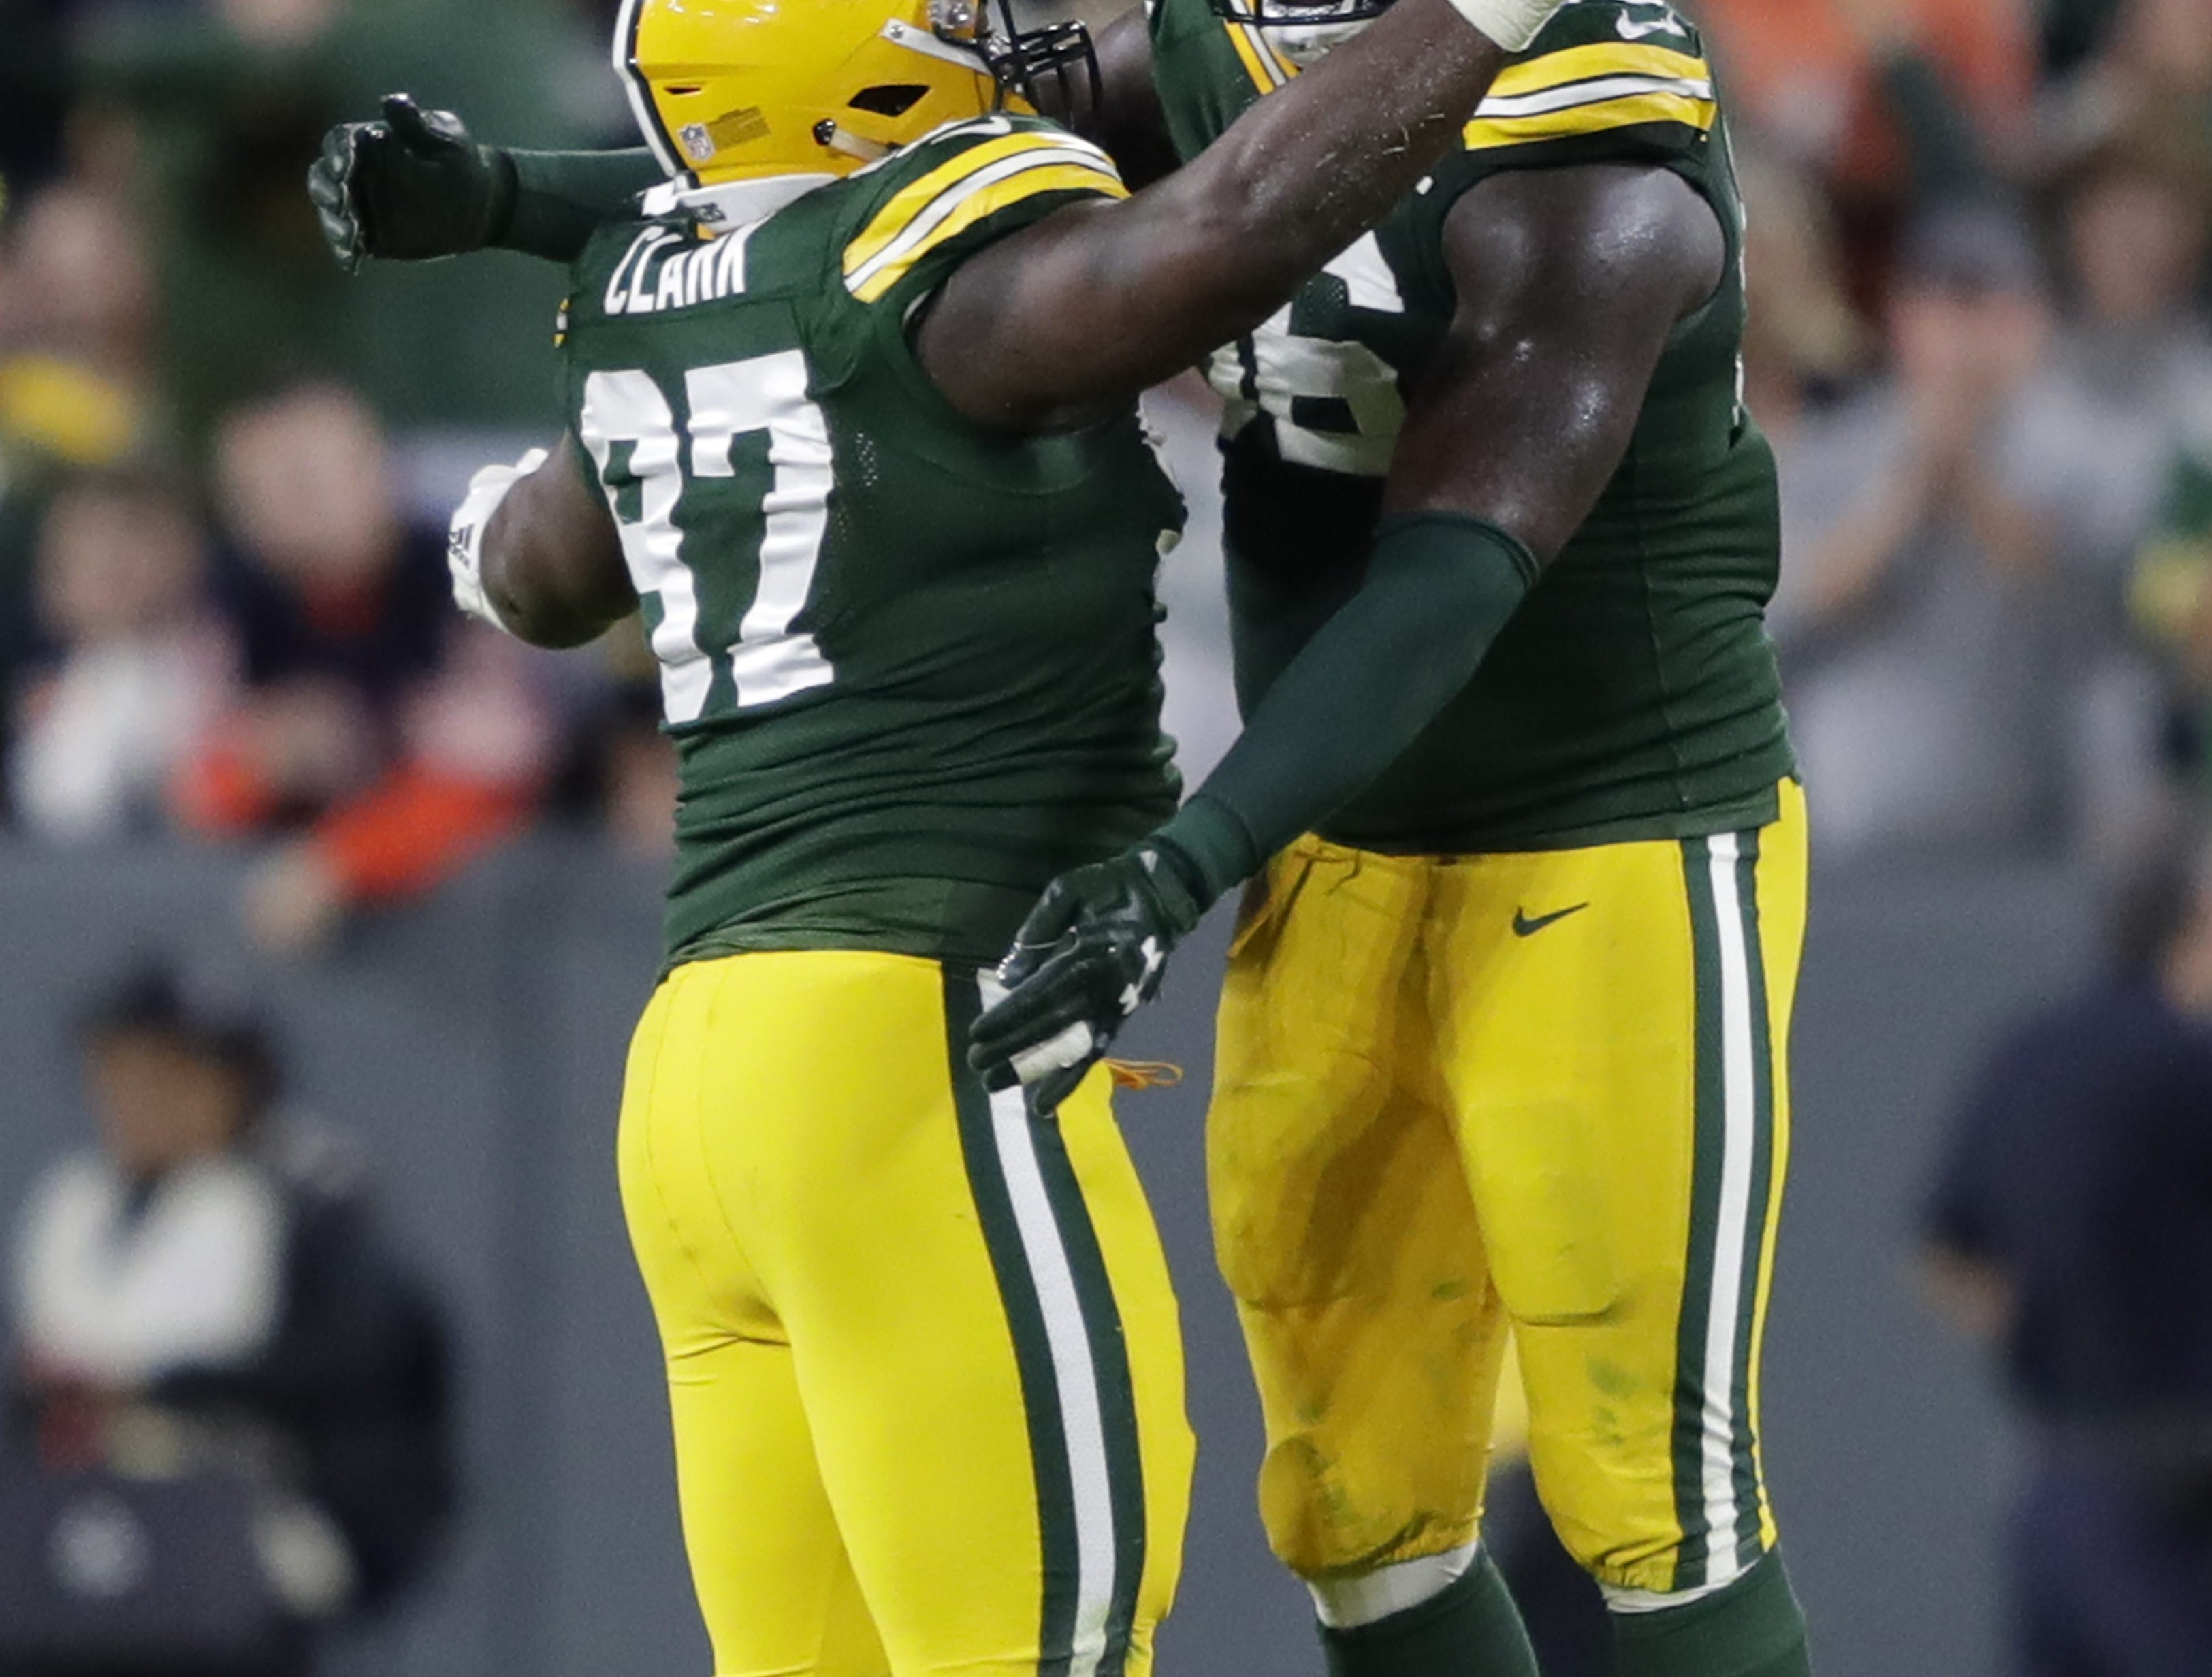 Green Bay Packers nose tackle Kenny Clark (97) celebrates recovering a fumble with teammate Muhammad Wilkerson (96) in the fourth quarter against the Chicago Bears Sunday, Sept. 9, 2018, at Lambeau Field in Green Bay, Wis.